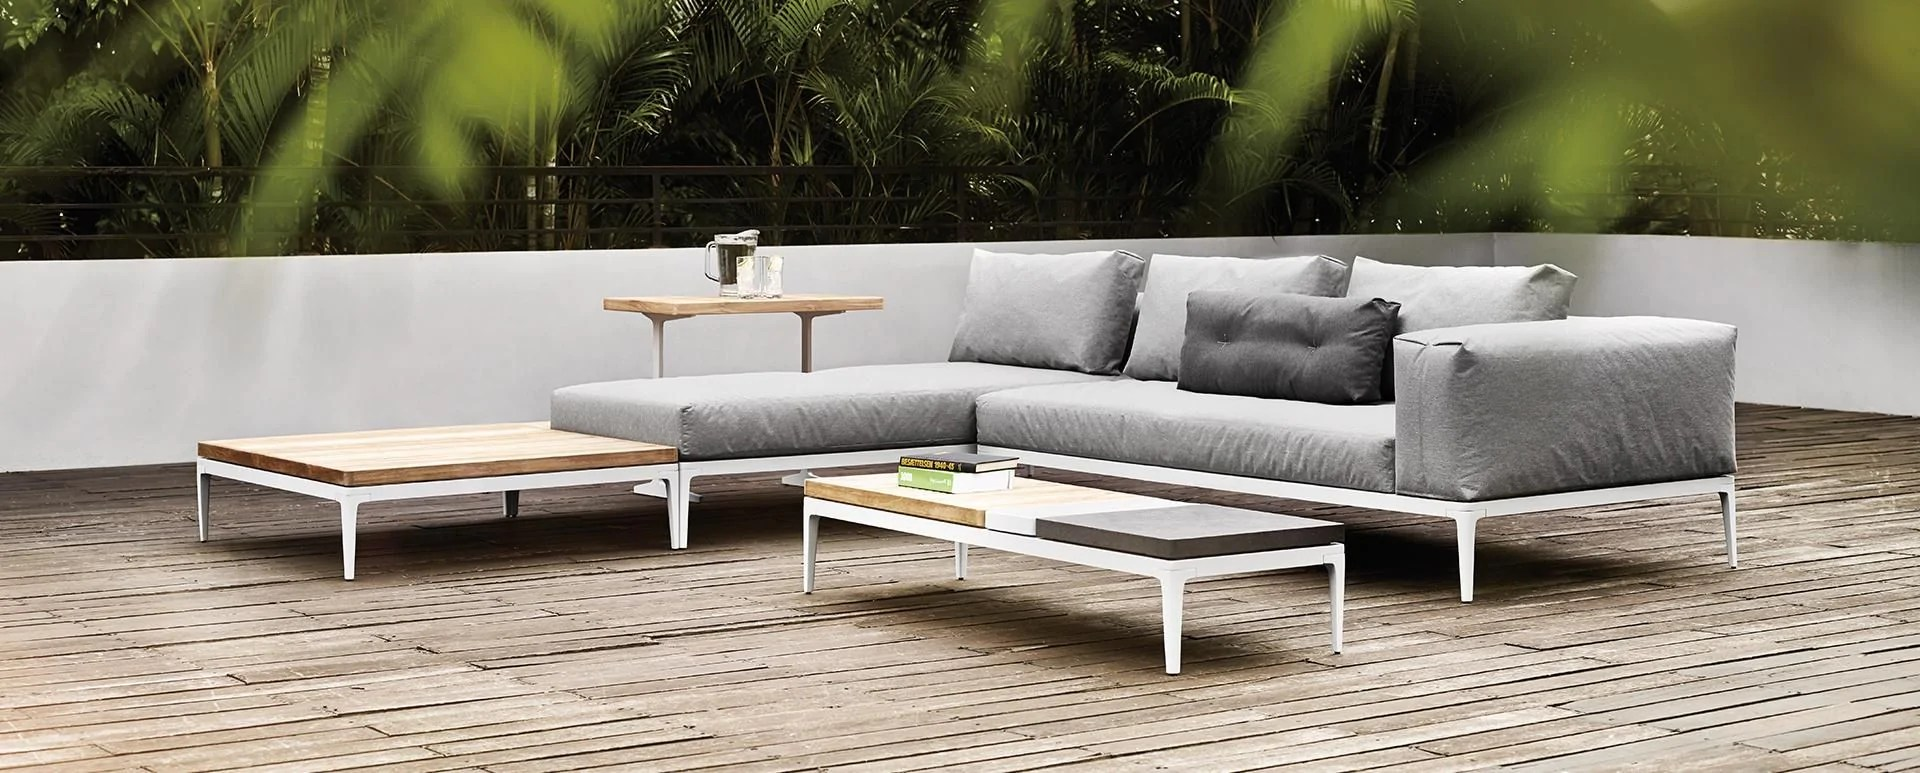 Sofa In A Box Companies Should You Buy Low End Big Box Retailer Patio Furniture Or High